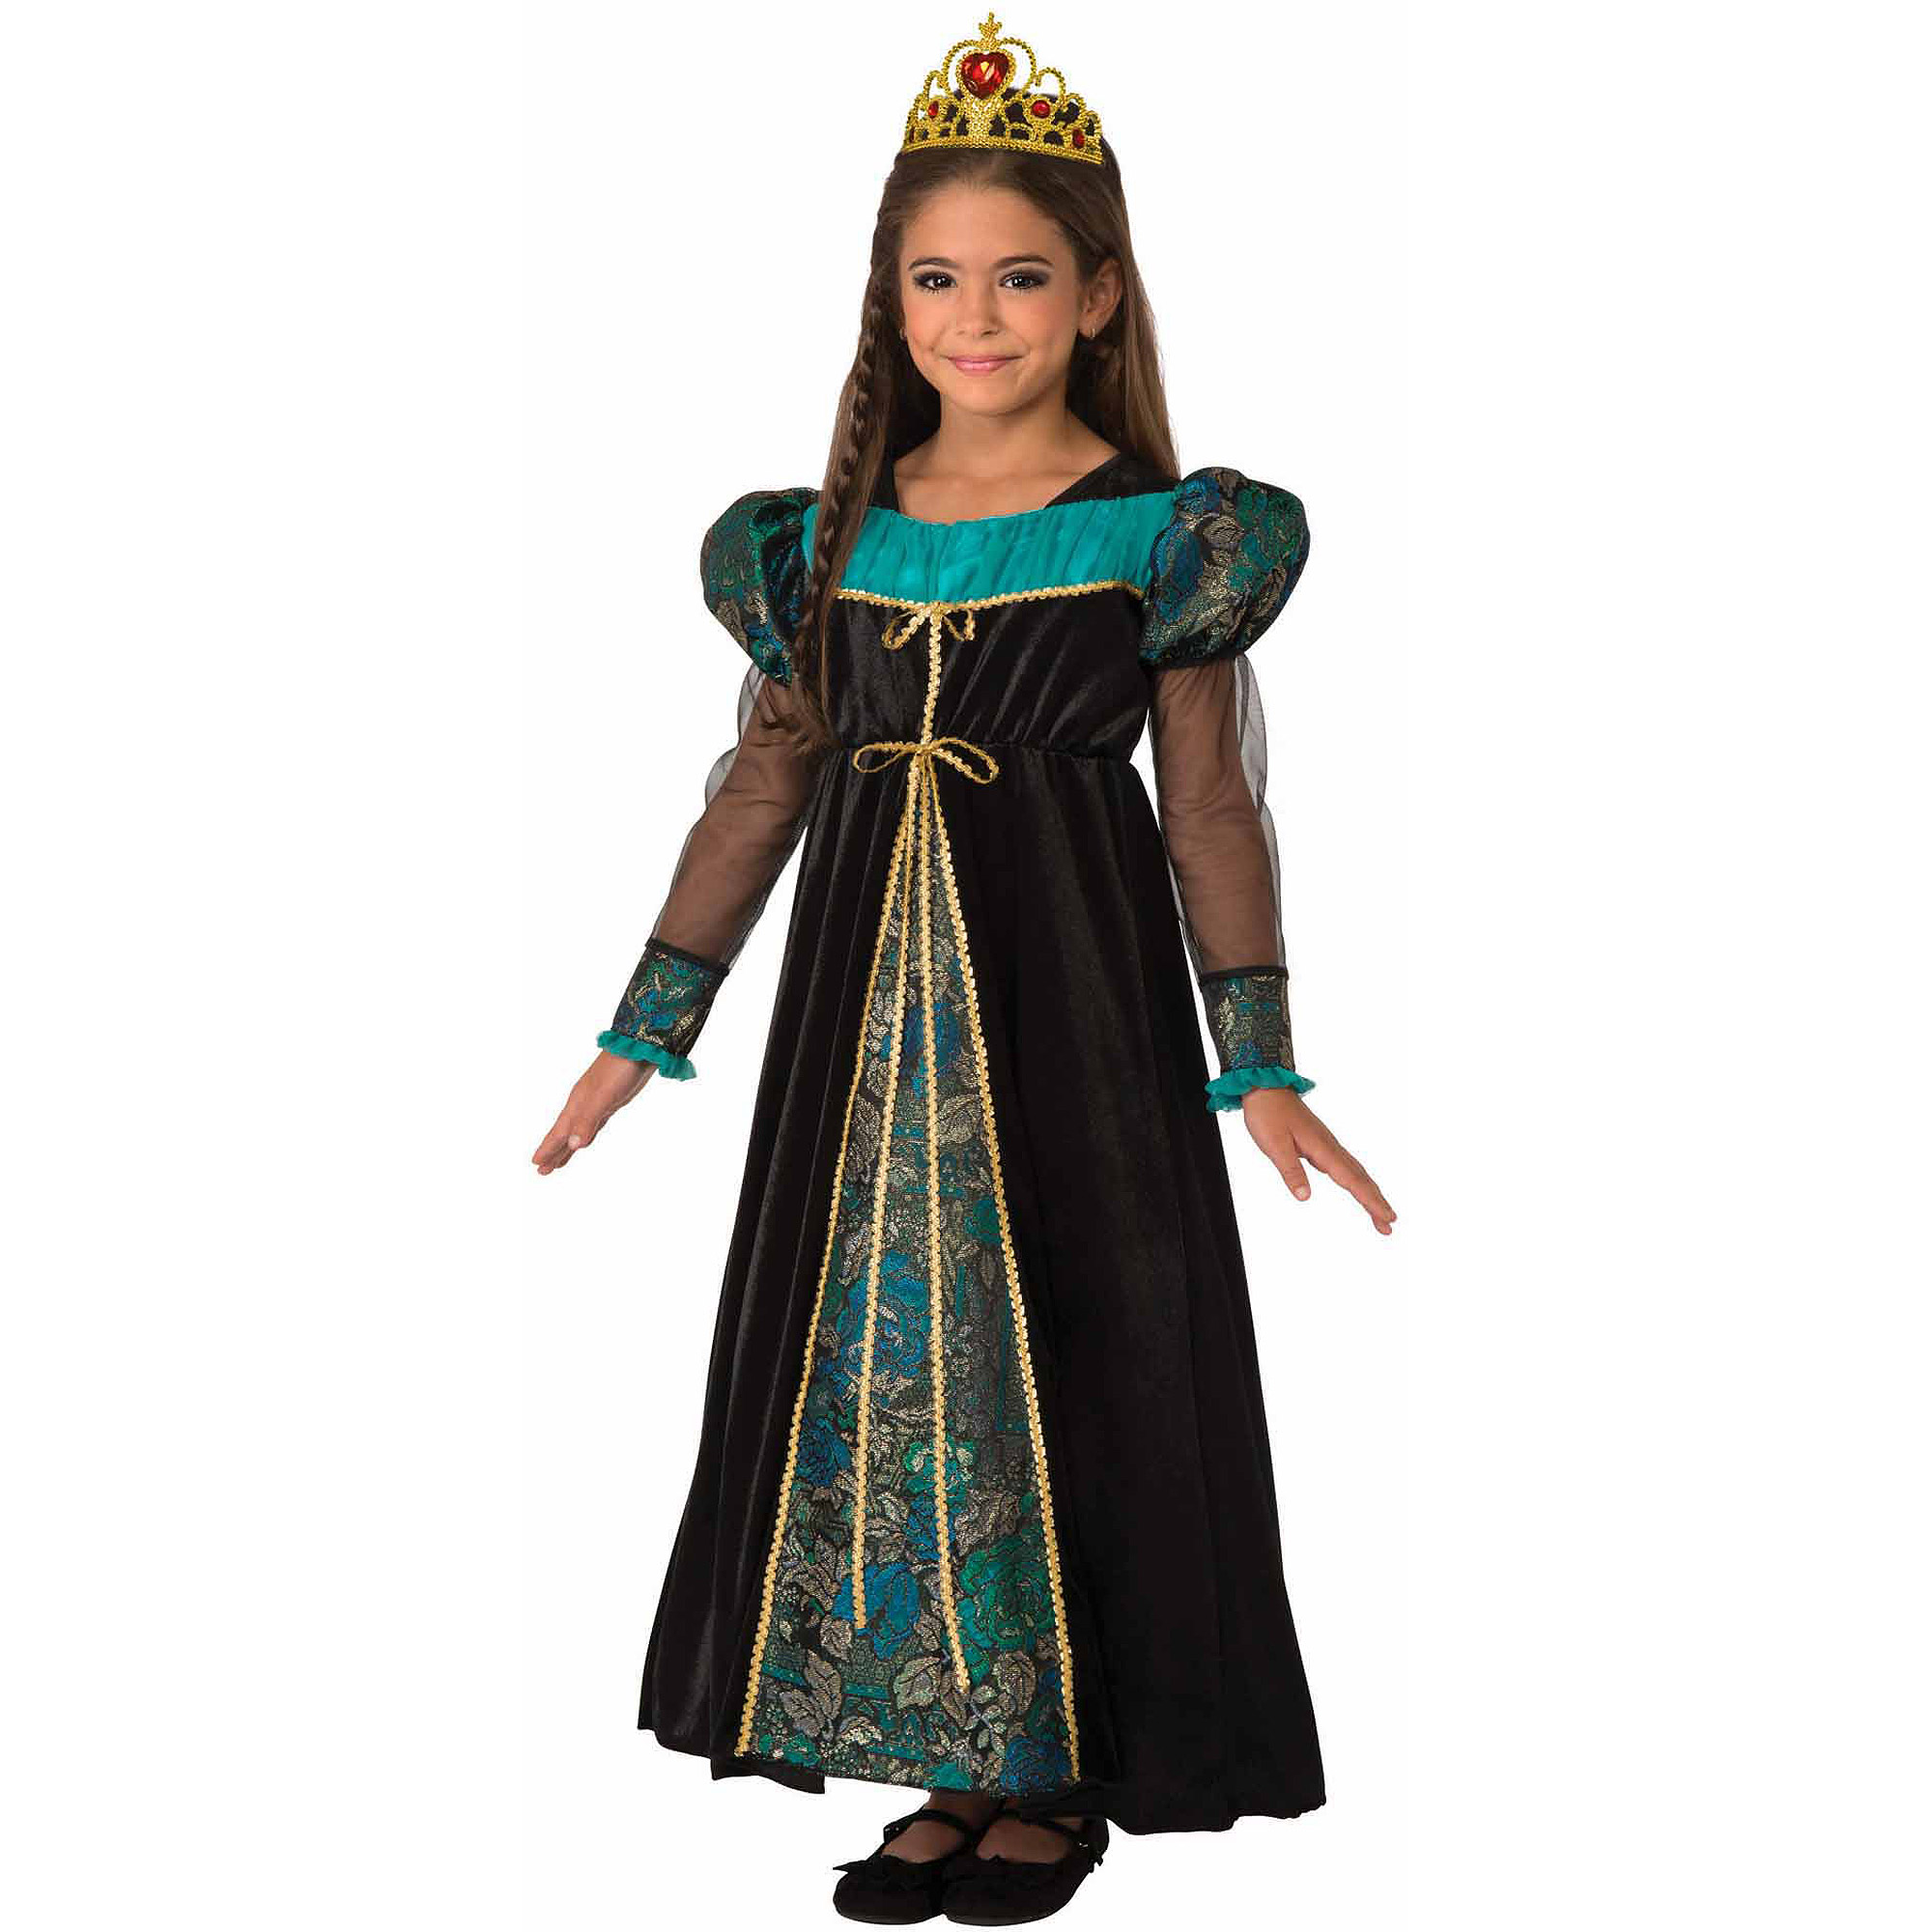 Rubies Camelot Child Dress Up / Role Play Costume